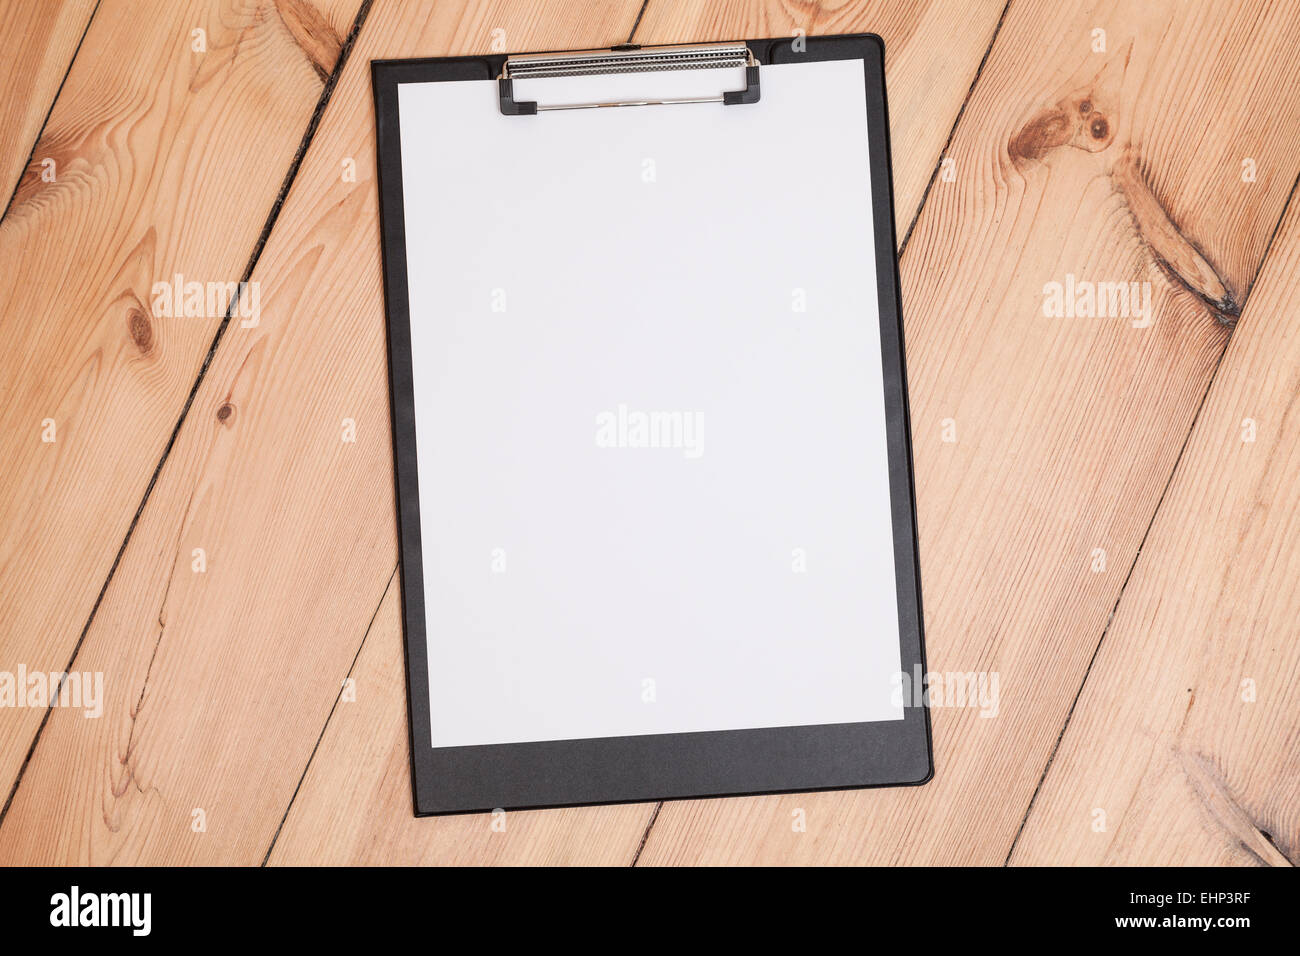 clipboard with white sheet on wooden floor - Stock Image